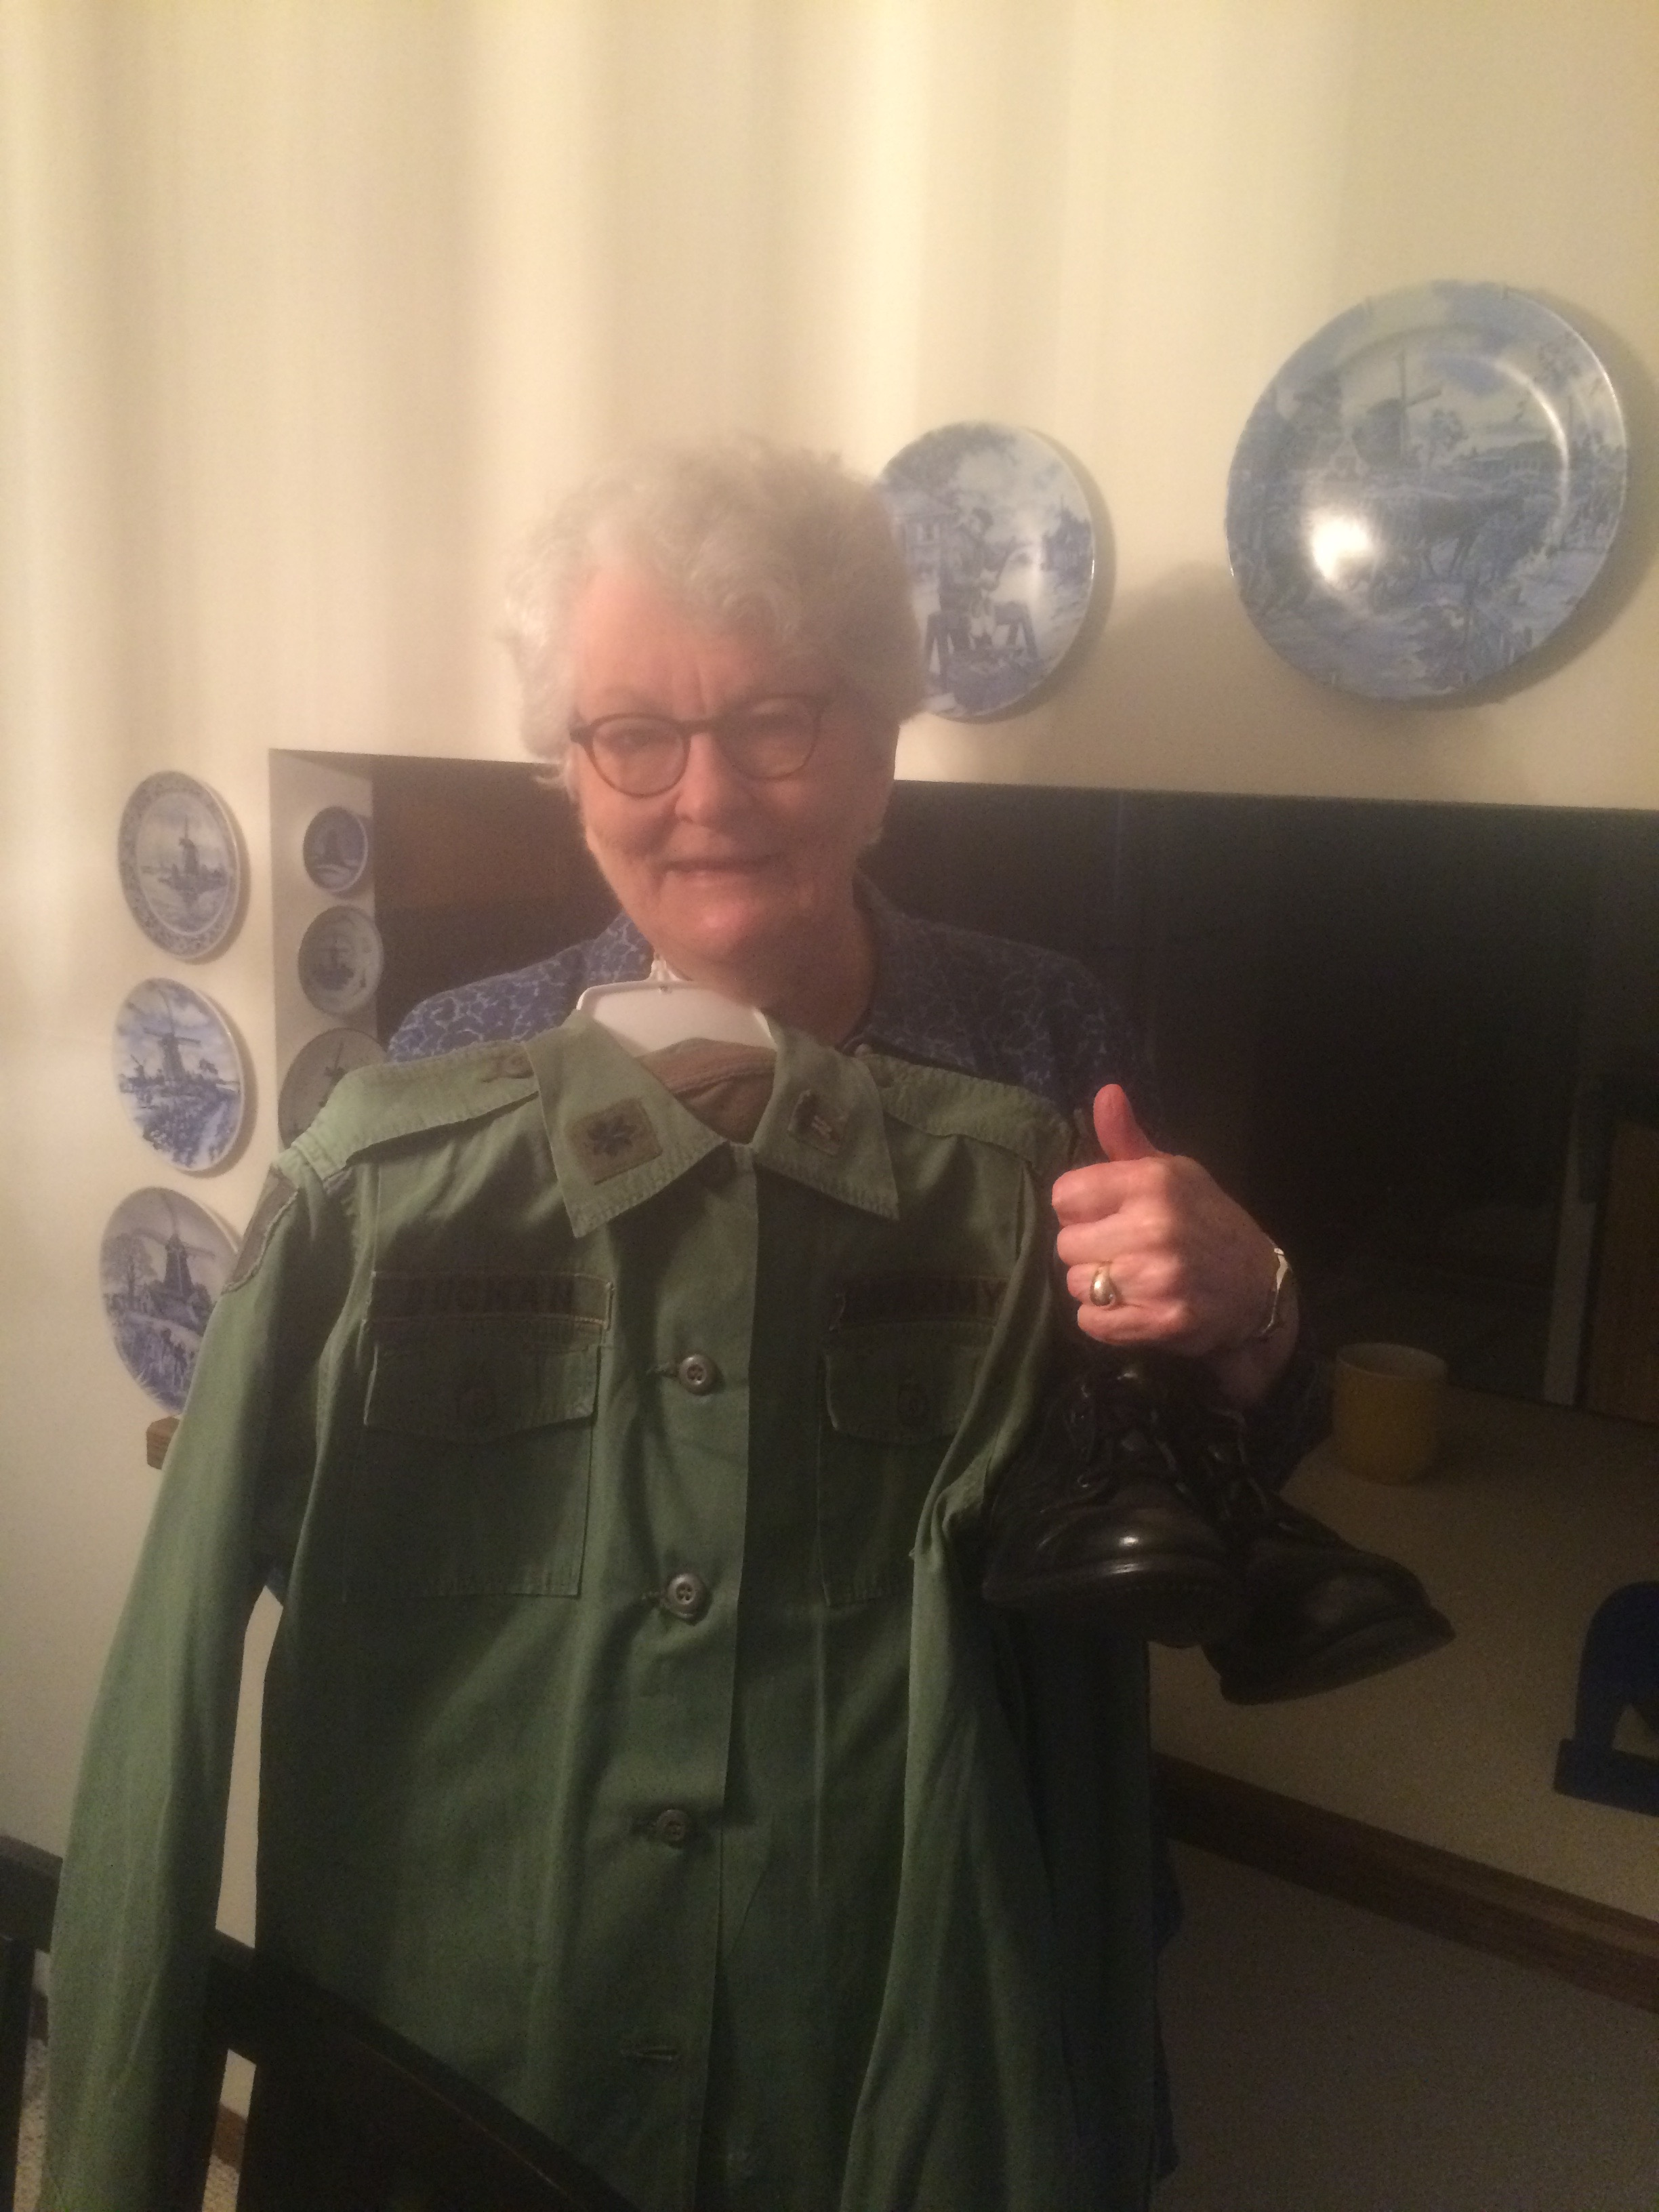 Valerie_buchan_with_uniform_small